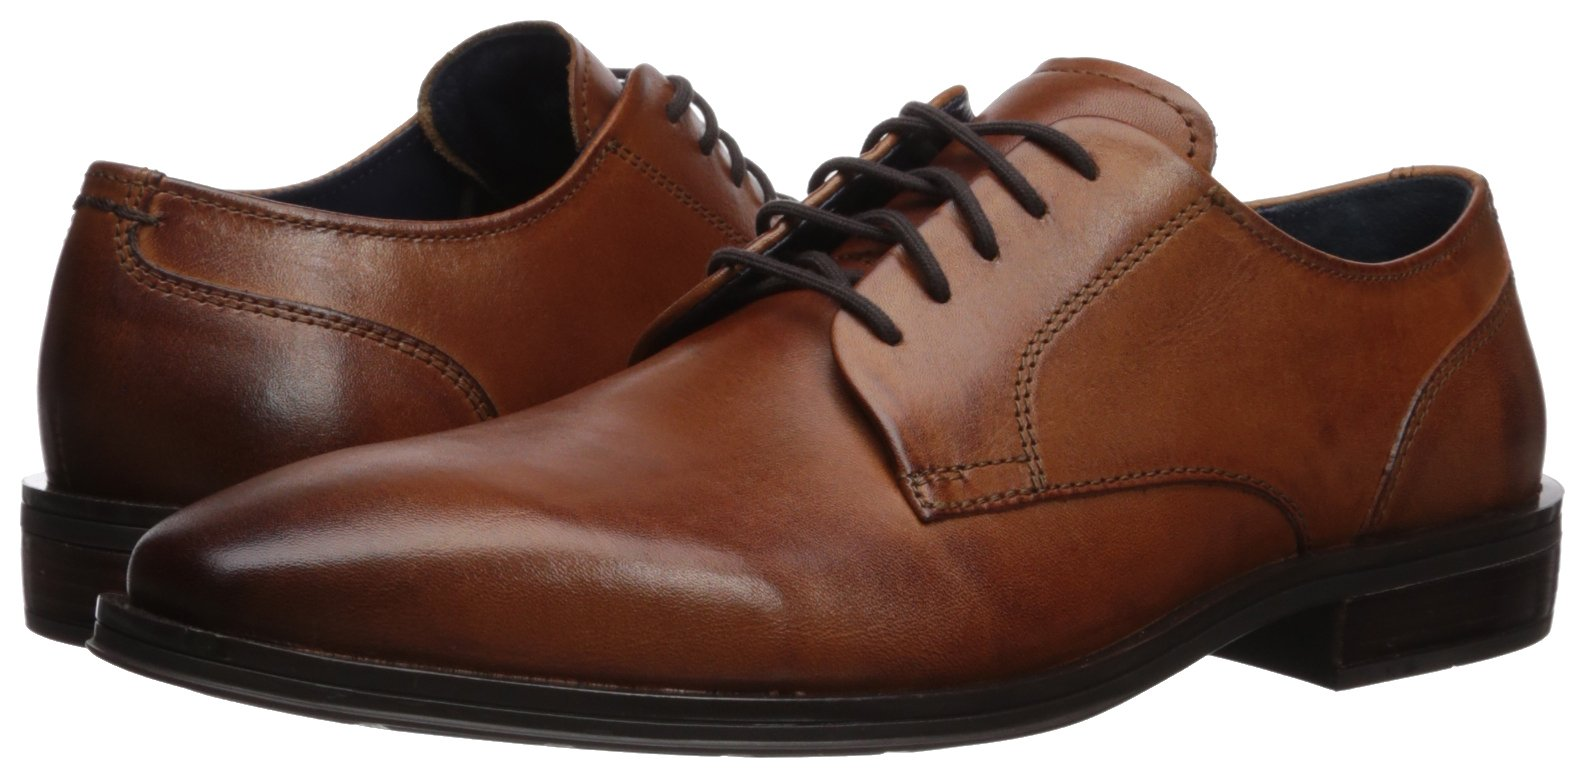 Cole Haan Men's Dawes Grand Plain Toe Oxford, British Tan, 11 Medium US by Cole Haan (Image #5)